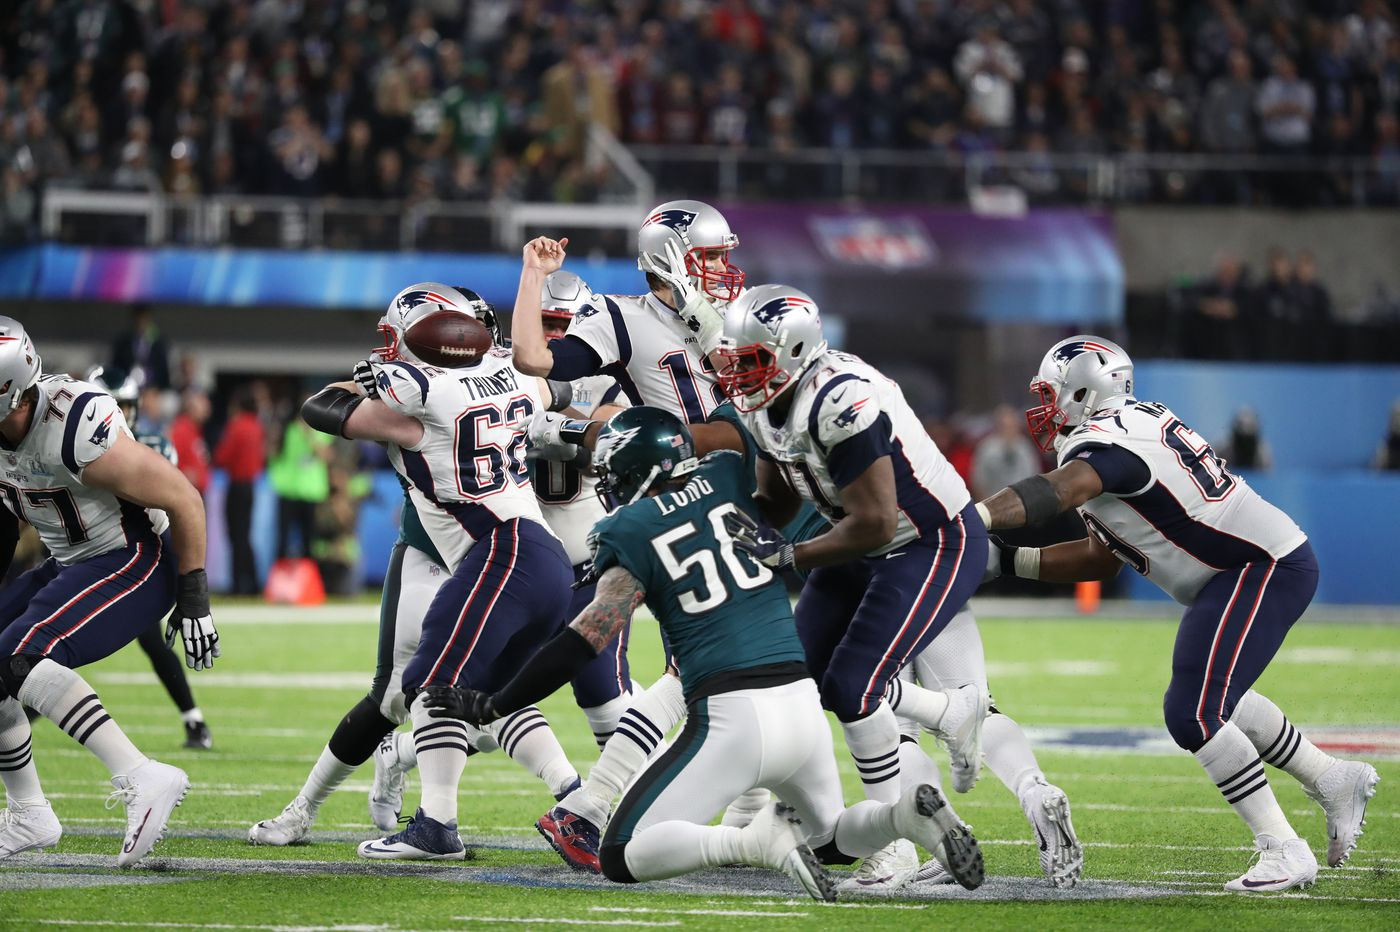 How Eagles' Brandon Graham overcame pair of injuries in Super Bowl to sack Tom Brady